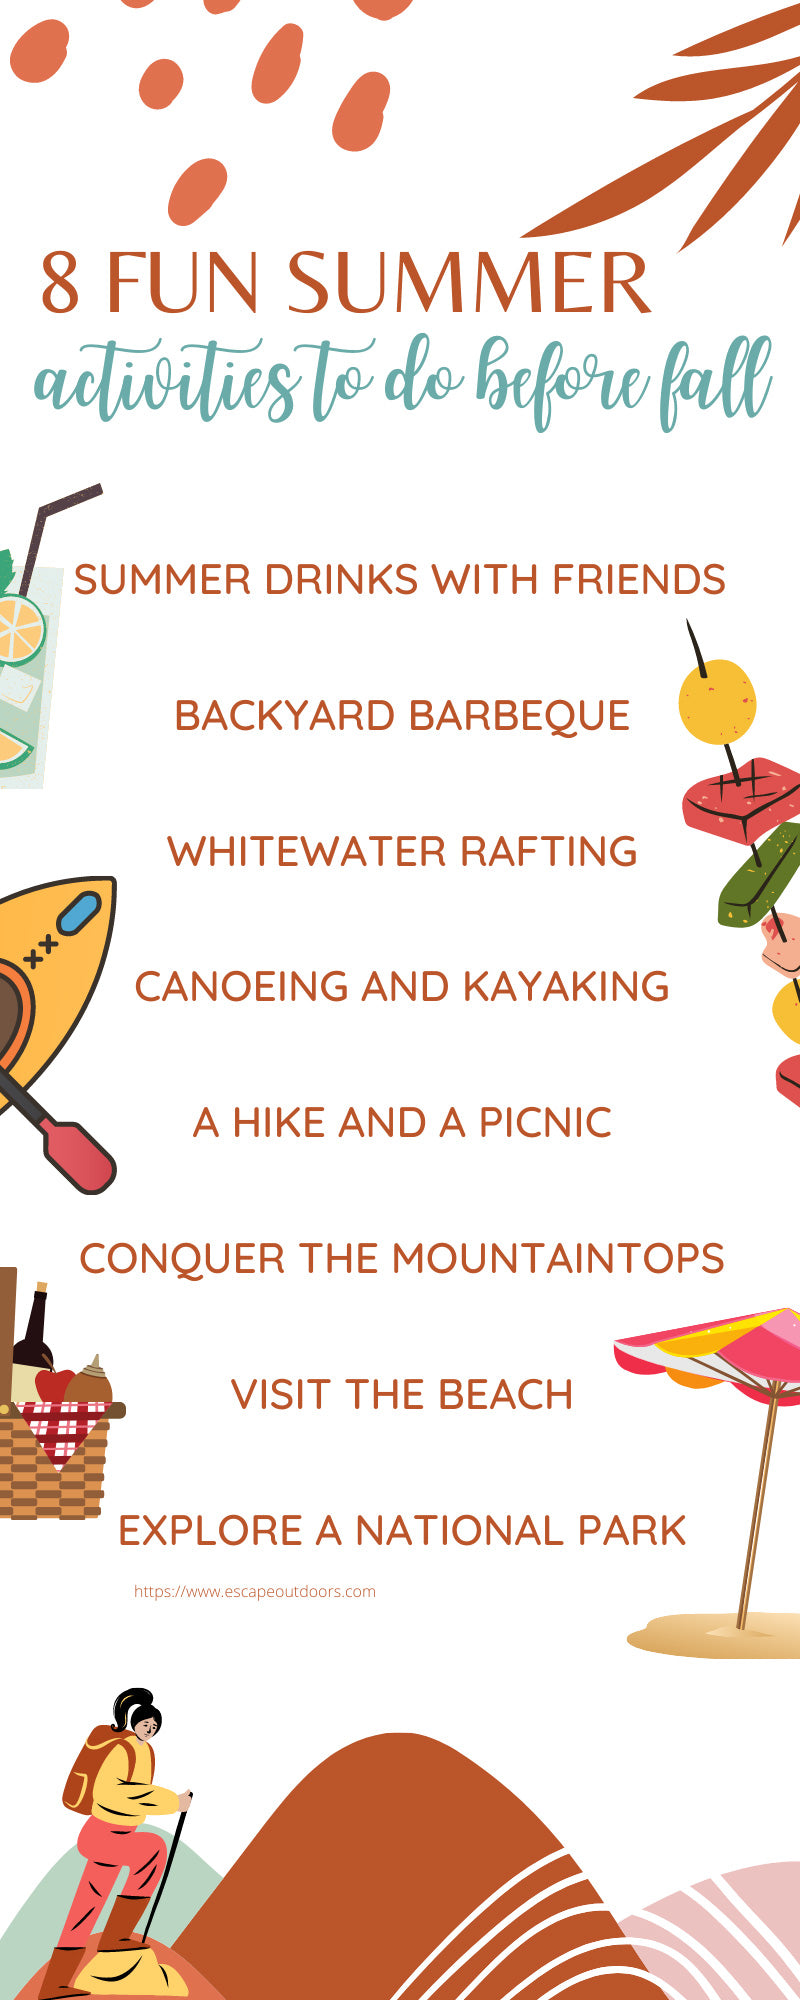 8 Fun Summer Activities To Do Before Fall